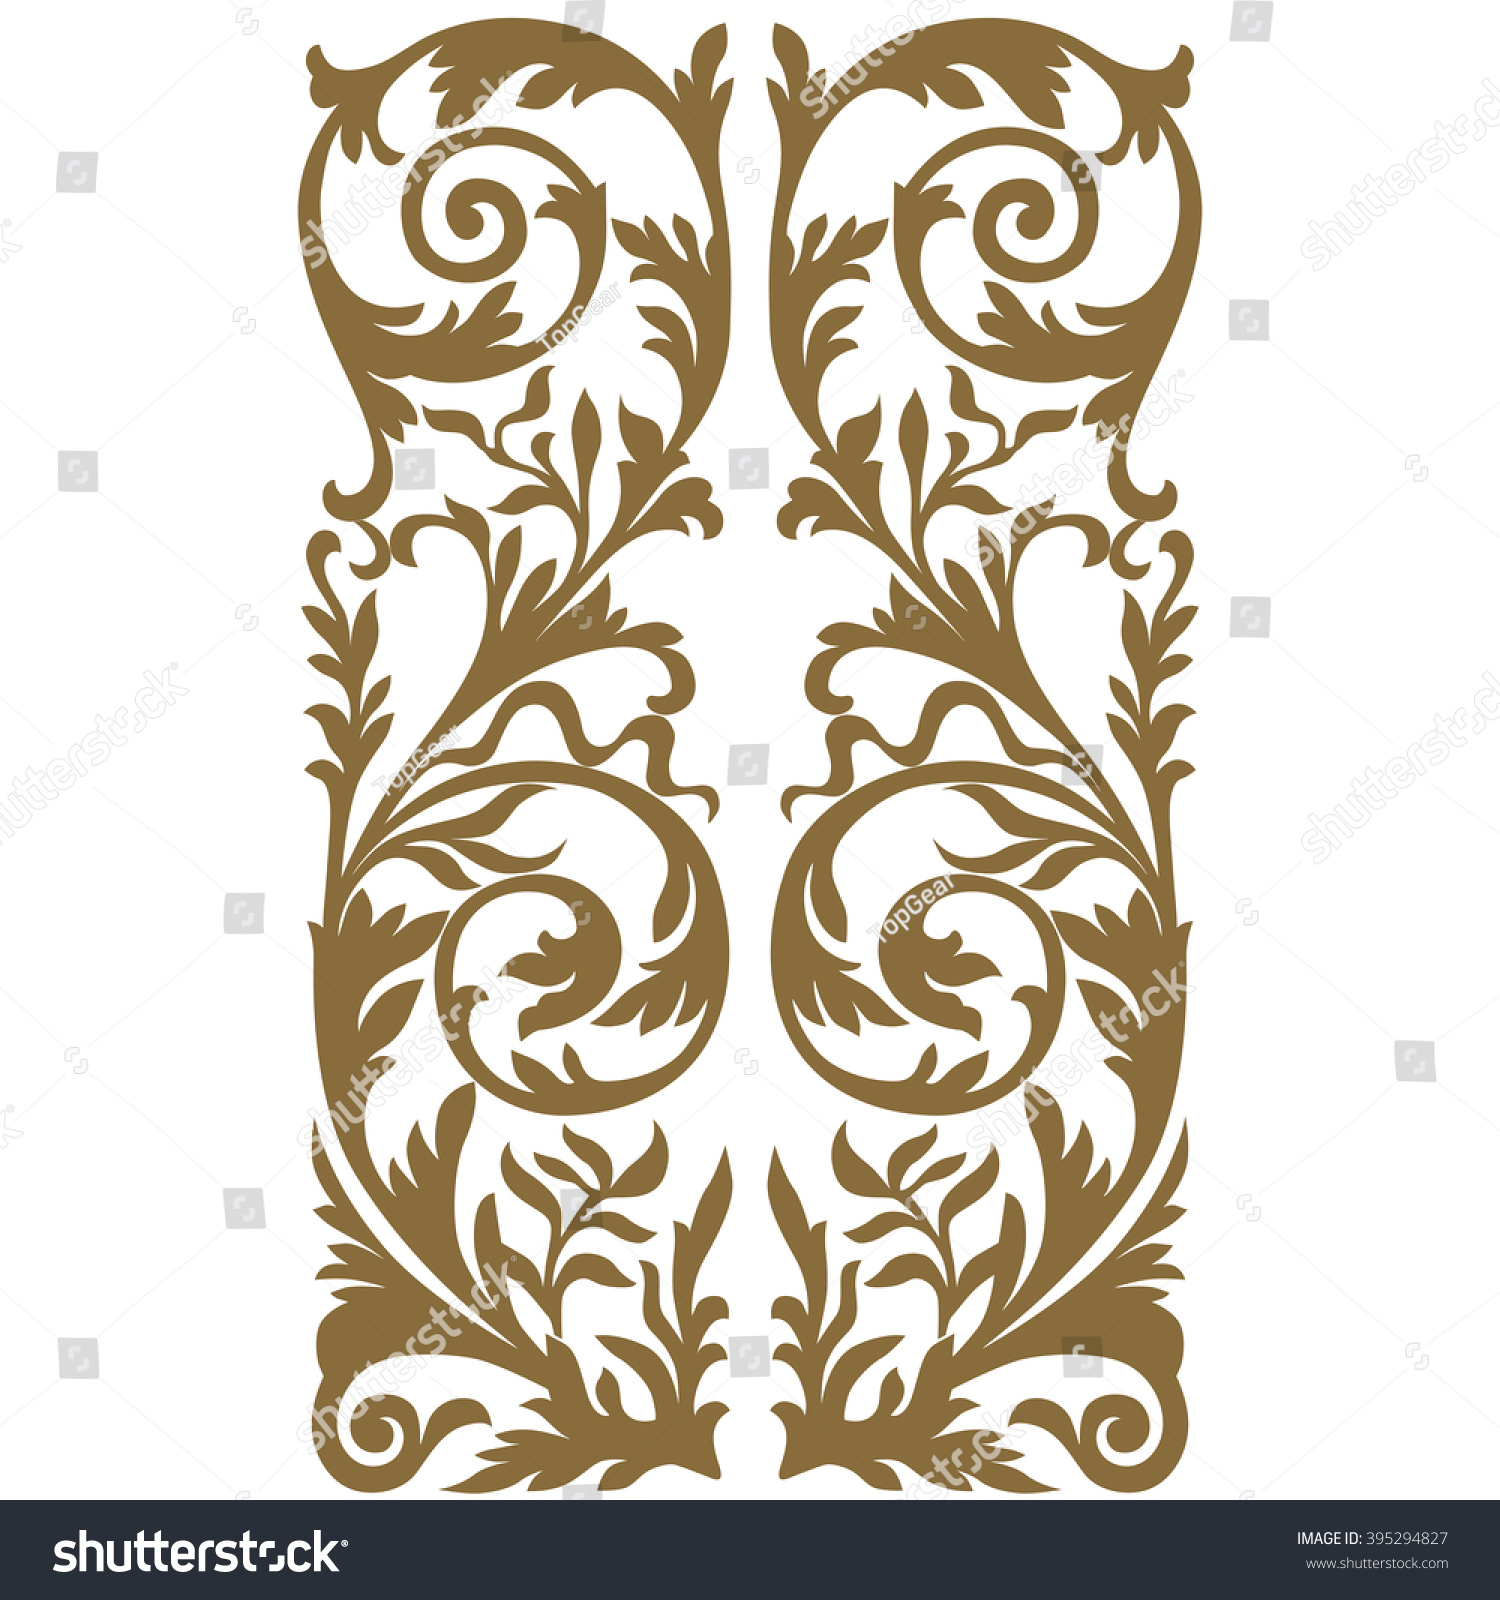 Antique Scrollimgs: Golden Vintage Baroque Frame Scroll Ornament Stock Vector